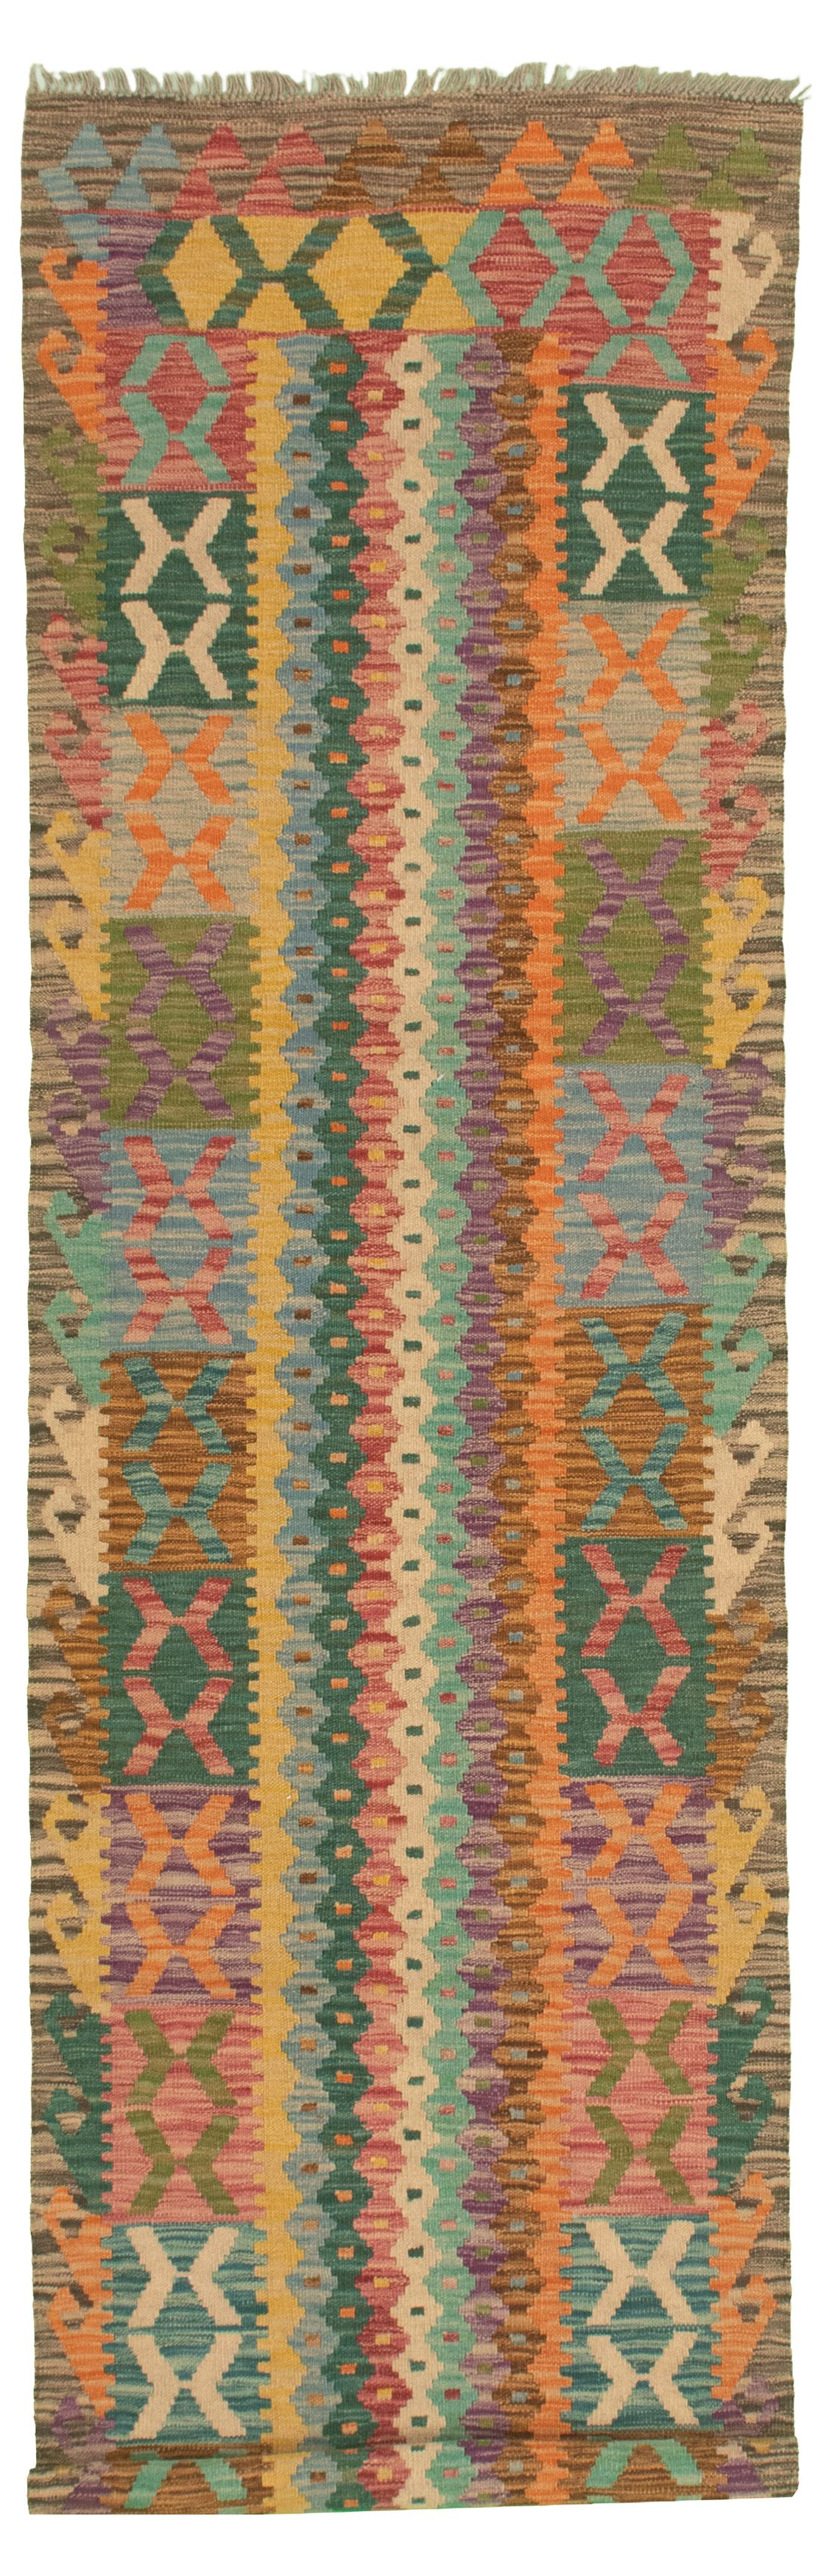 """Hand woven Bold and Colorful  Light Orange, Teal Wool Kilim 2'8"""" x 9'8"""" Size: 2'8"""" x 9'8"""""""